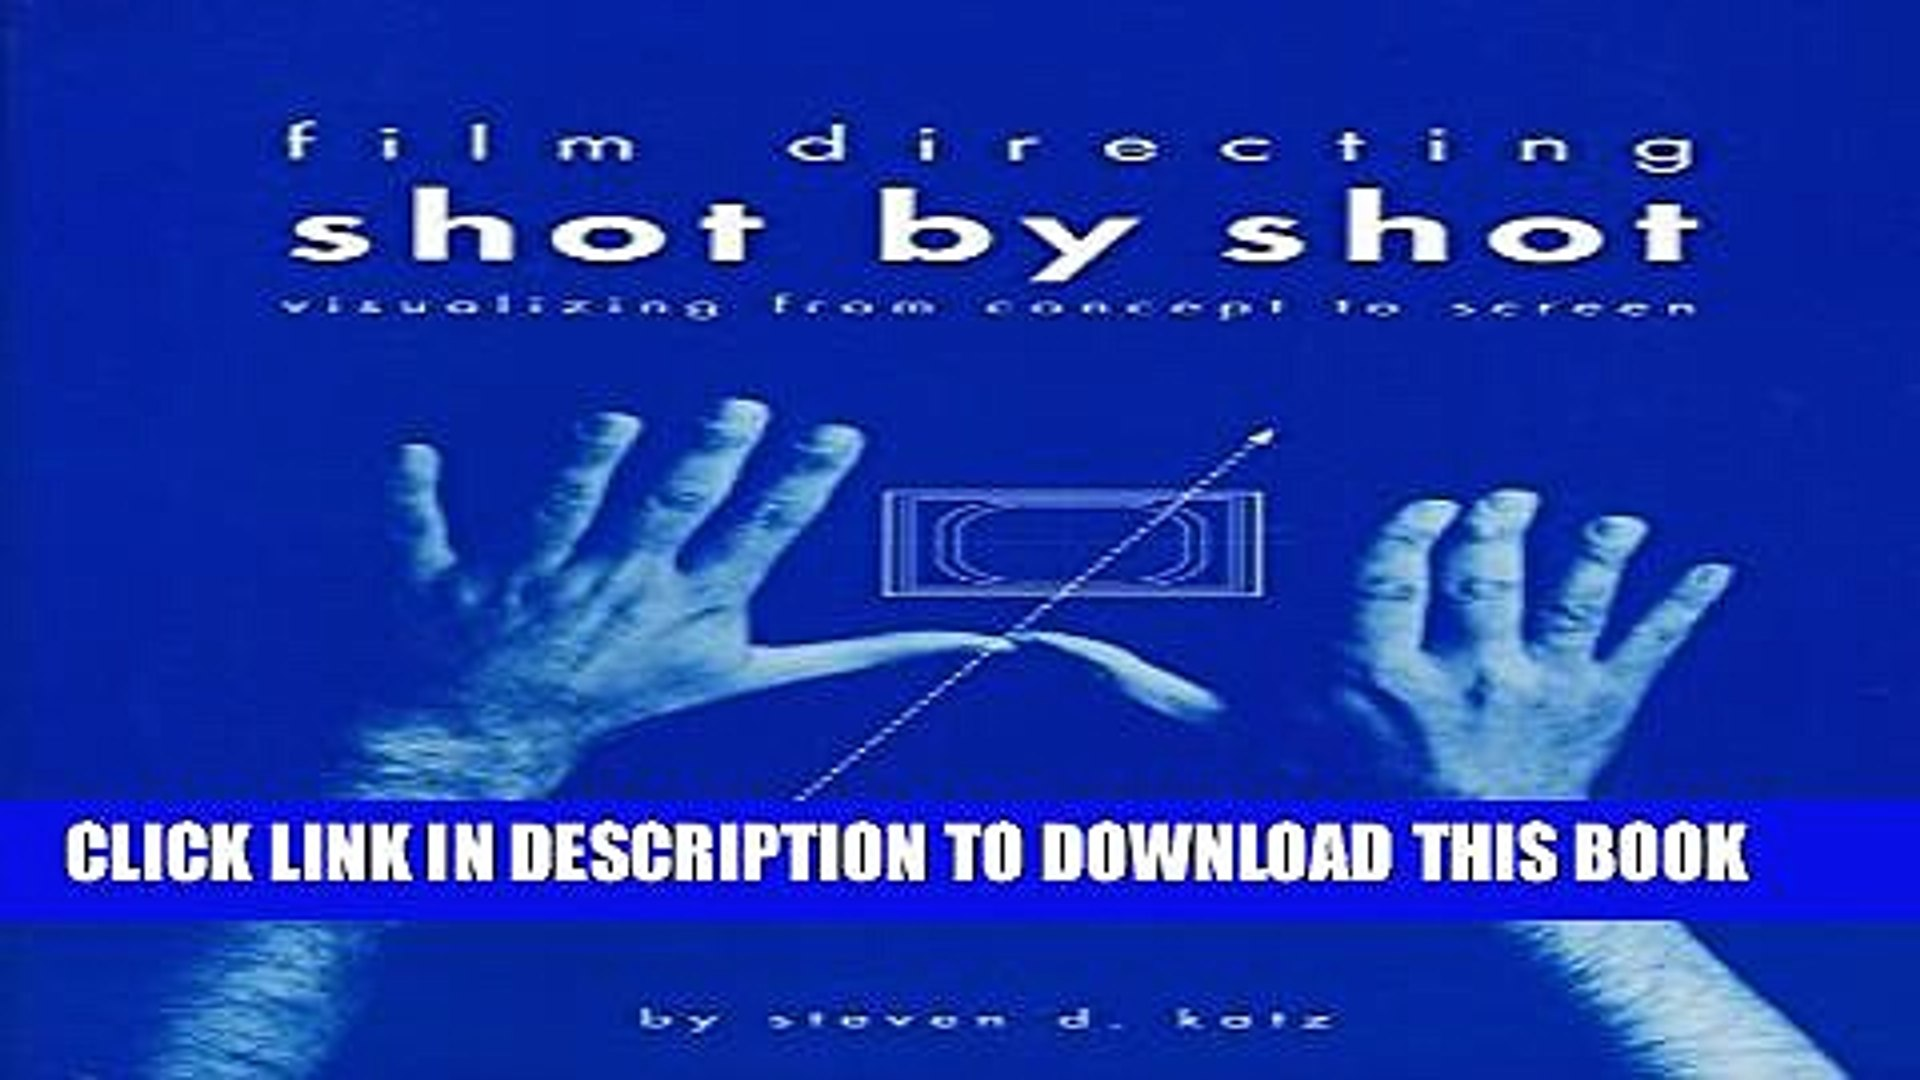 Collection Book Film Directing Shot by Shot: Visualizing from Concept to Screen (Michael Wiese